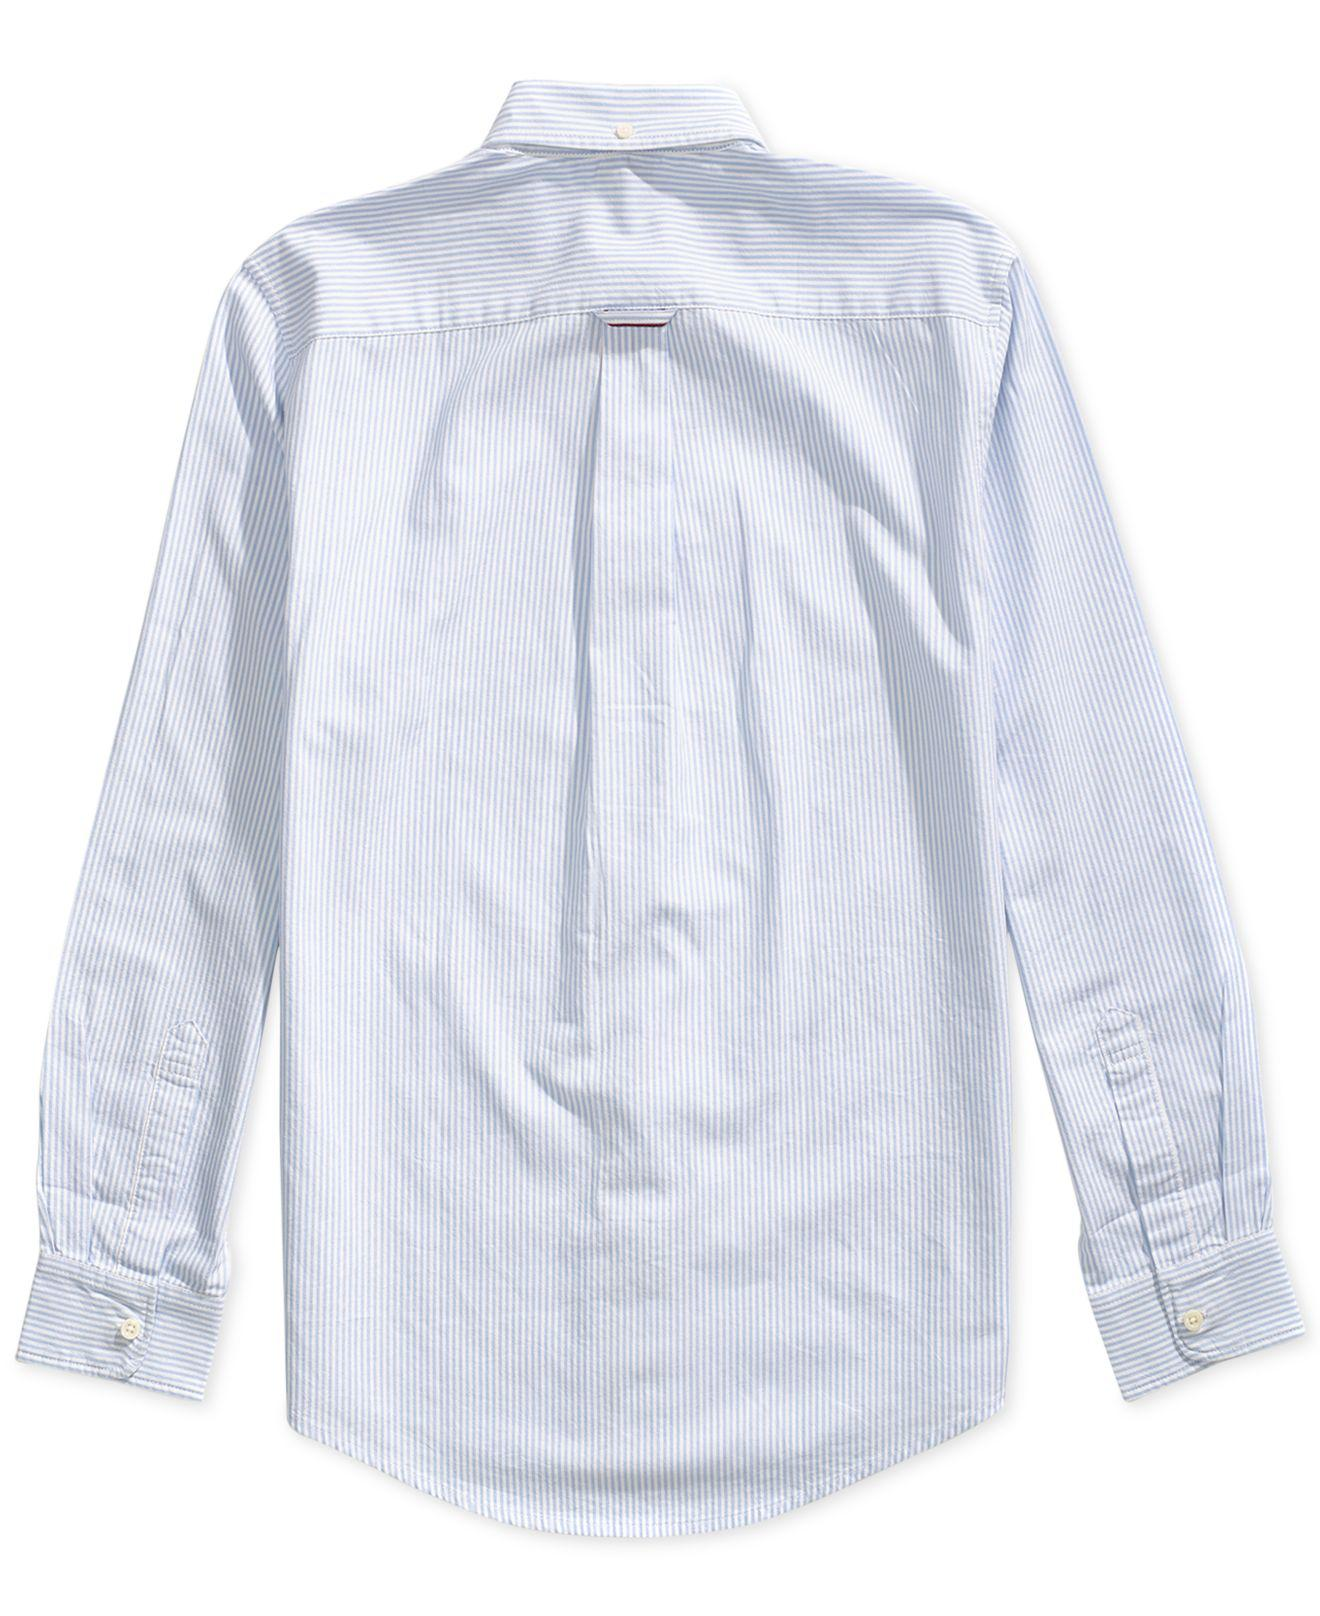 c0c4d4538c2 Lyst - Tommy Hilfiger City Stripe Oxford Shirt With Magnetic Buttons in  Blue for Men